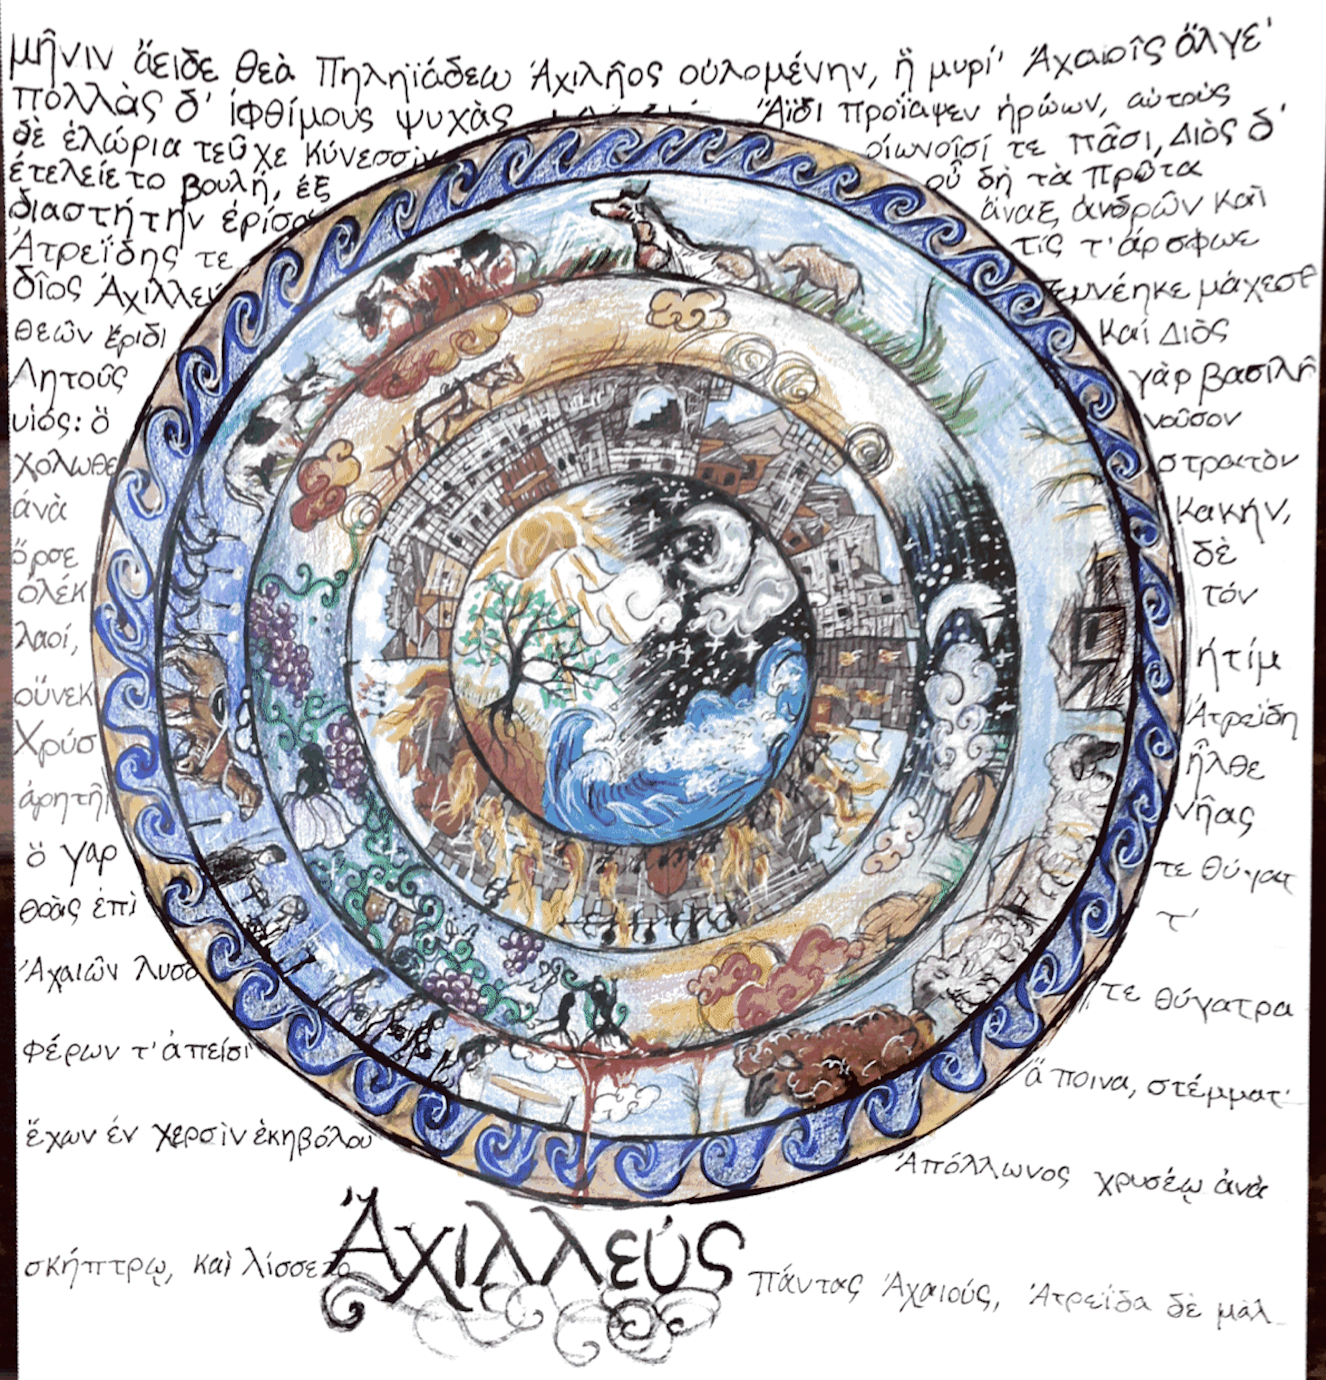 This amazing interpretation of Achilles' shield was done by a high school student based on Homer's description from the Iliad -- click image to read the whole article!